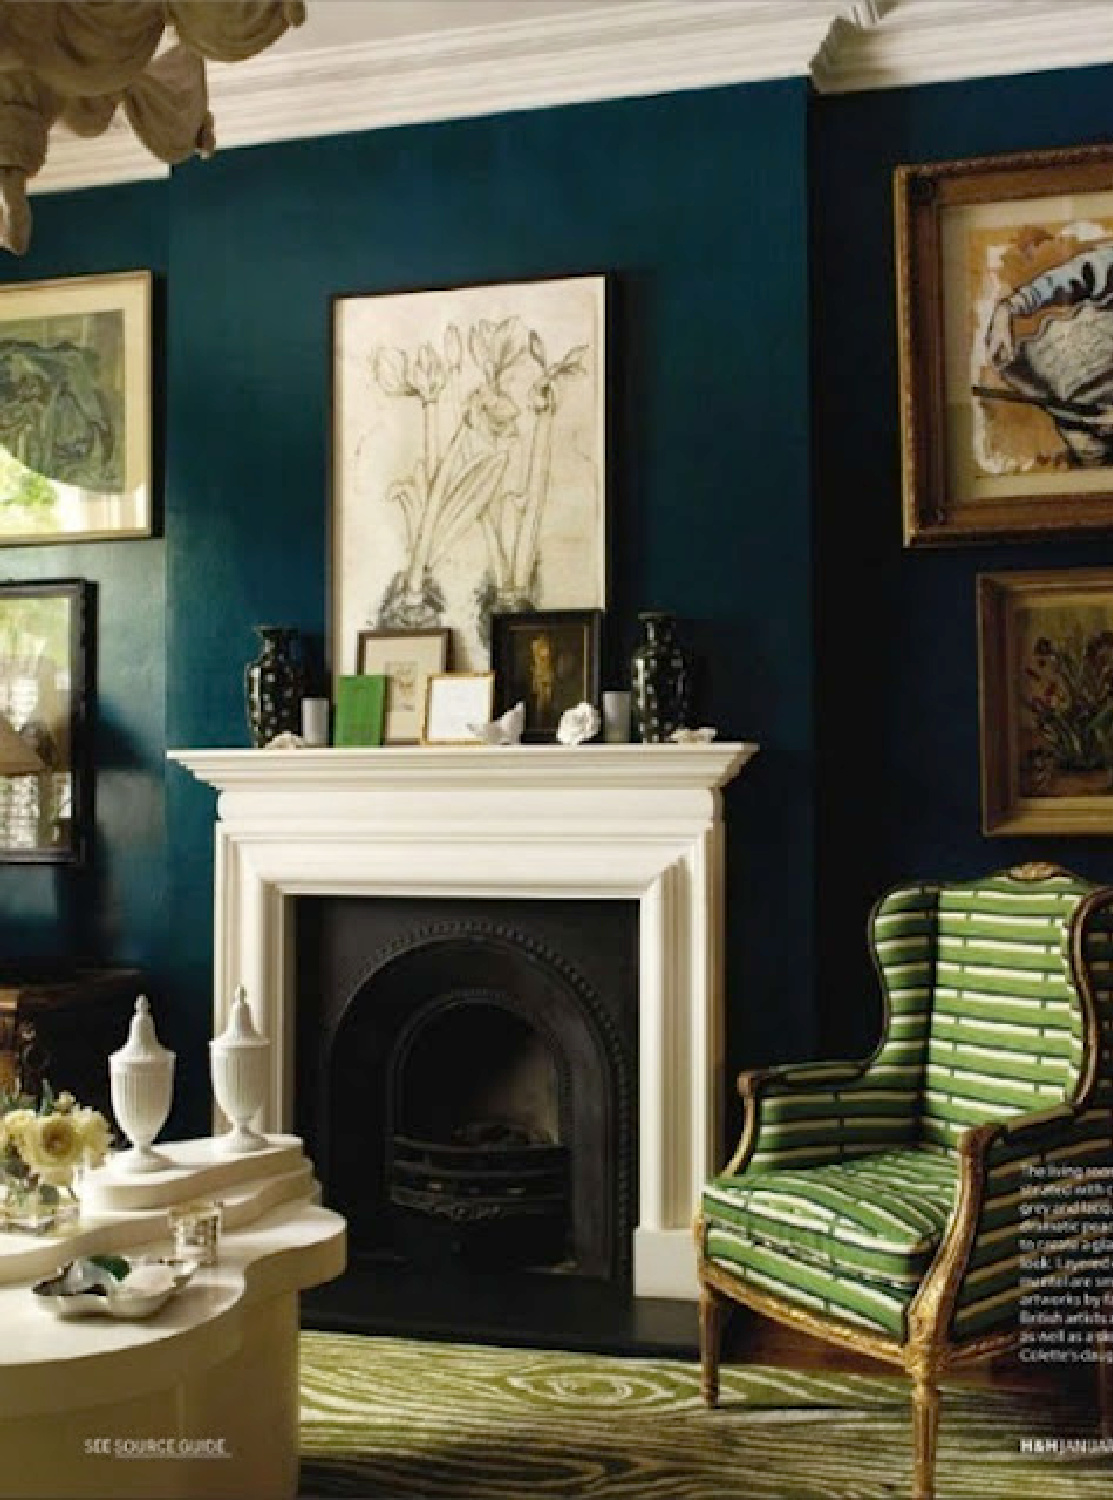 Deep teal walls in classic decorated living room. Come explore Dark Green Paint, Autumnal Greens & Interior Design Inspiration!